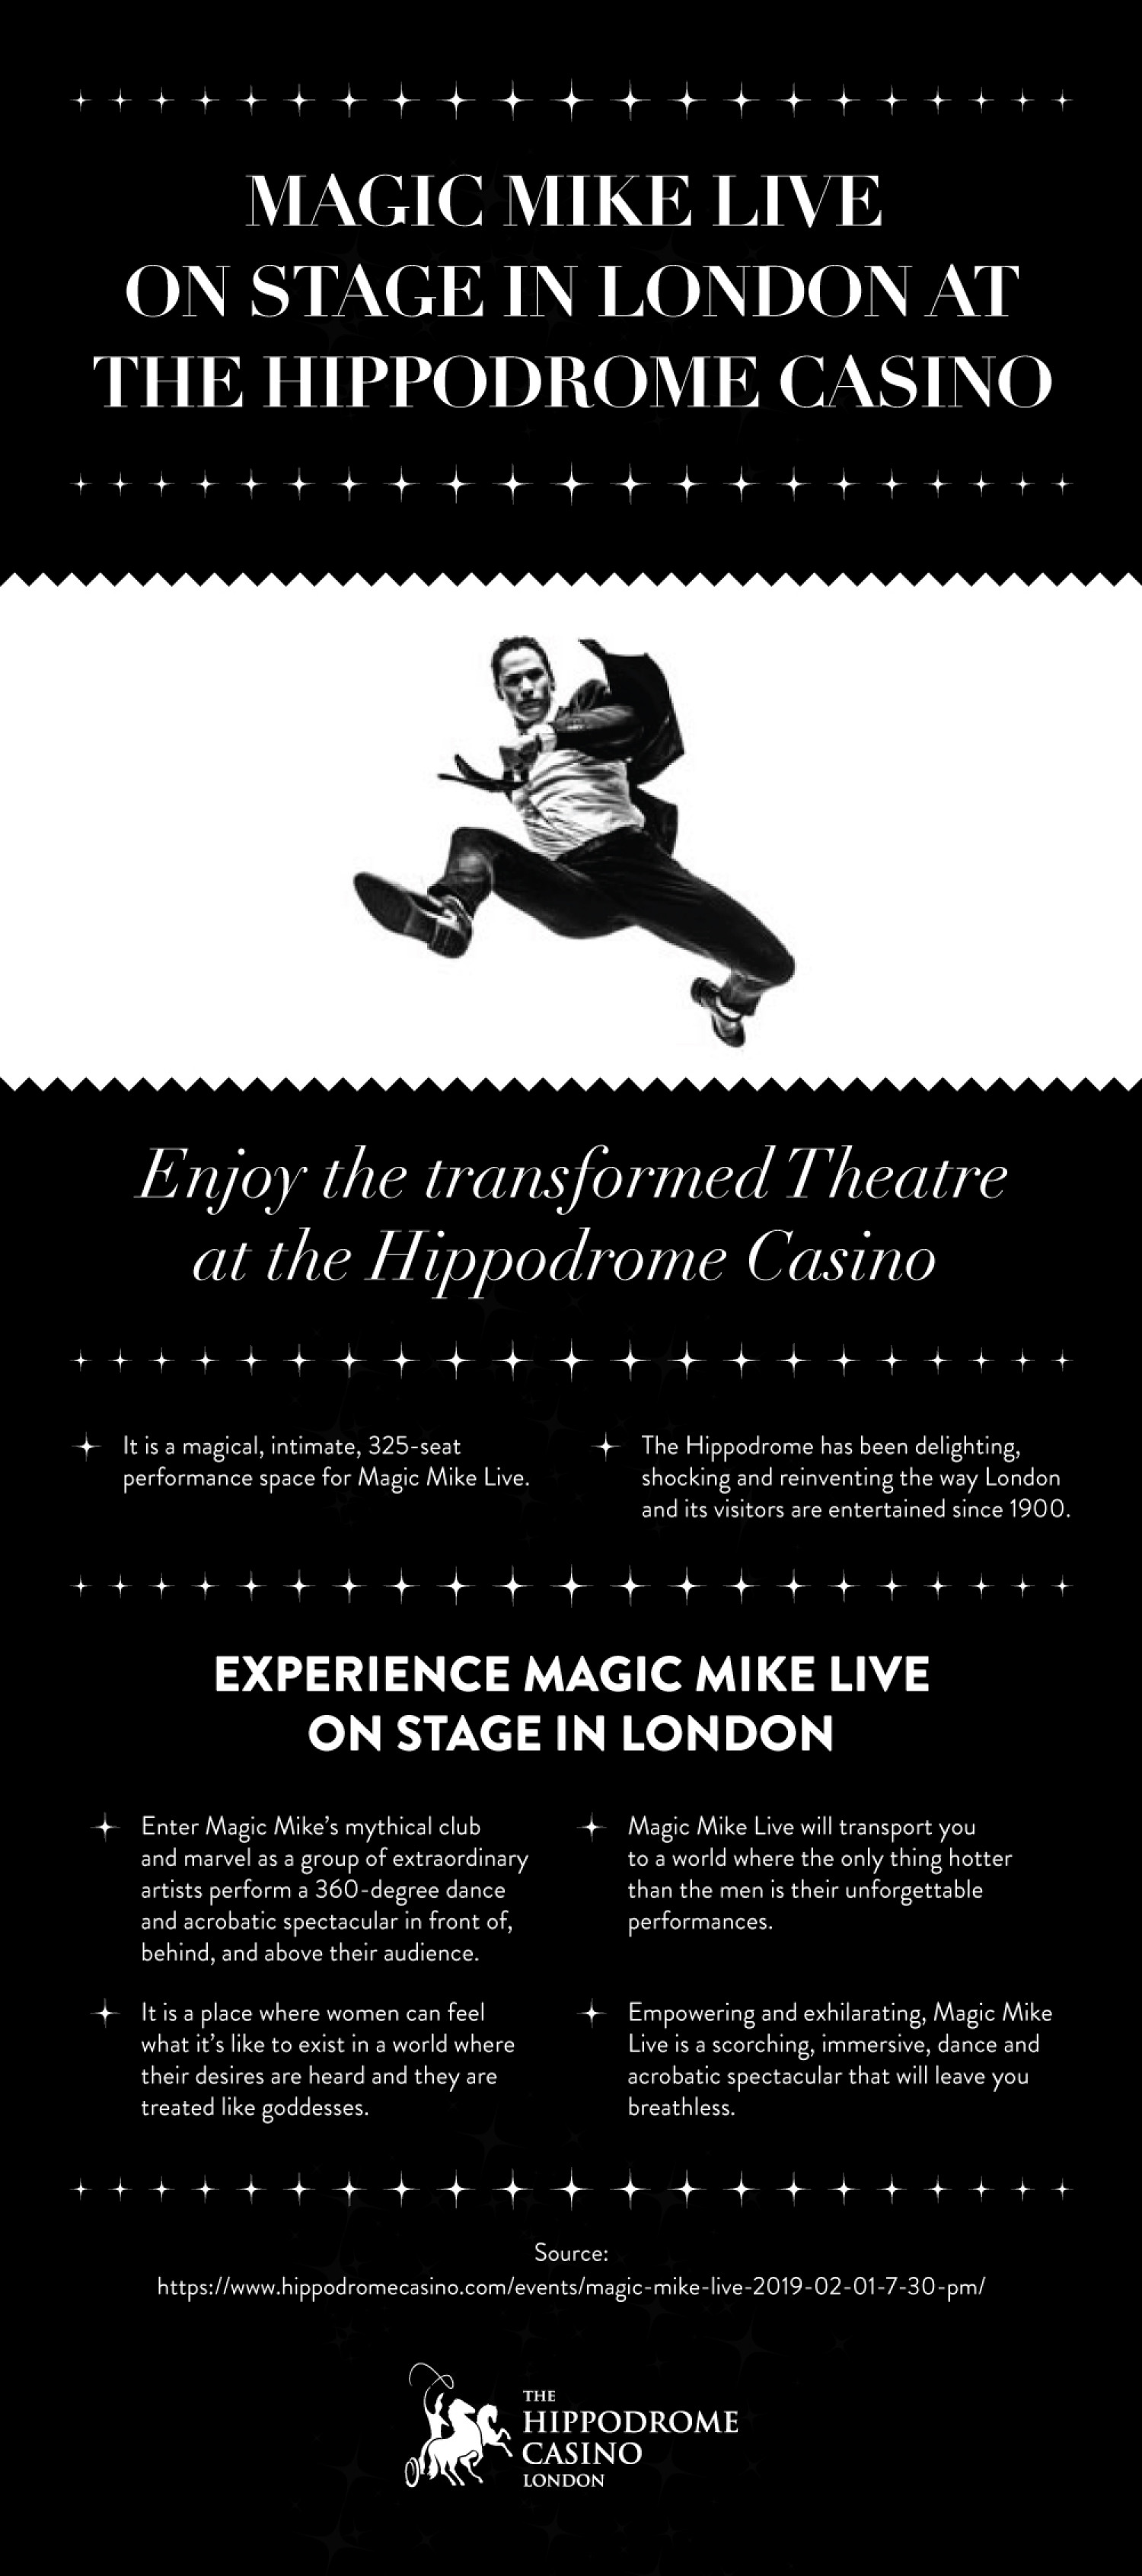 Magic Mike Live On Stage in London At The Hippodrome Casino Infographic